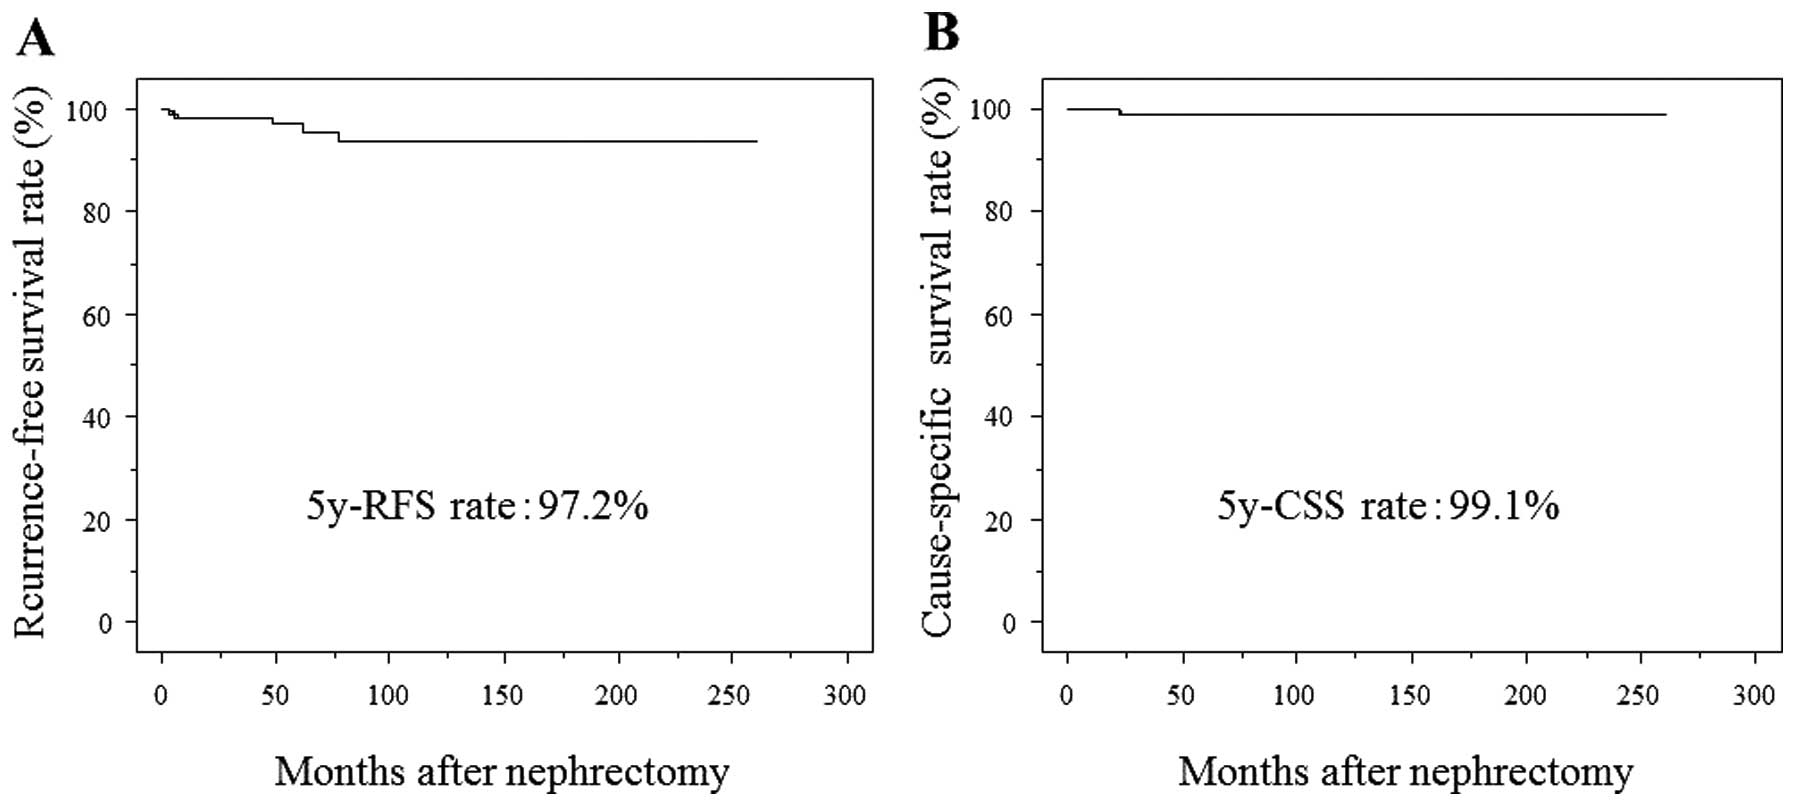 Tumor Necrosis Is A Strong Predictor For Recurrence In Patients With Pathological T1a Renal Cell Carcinoma